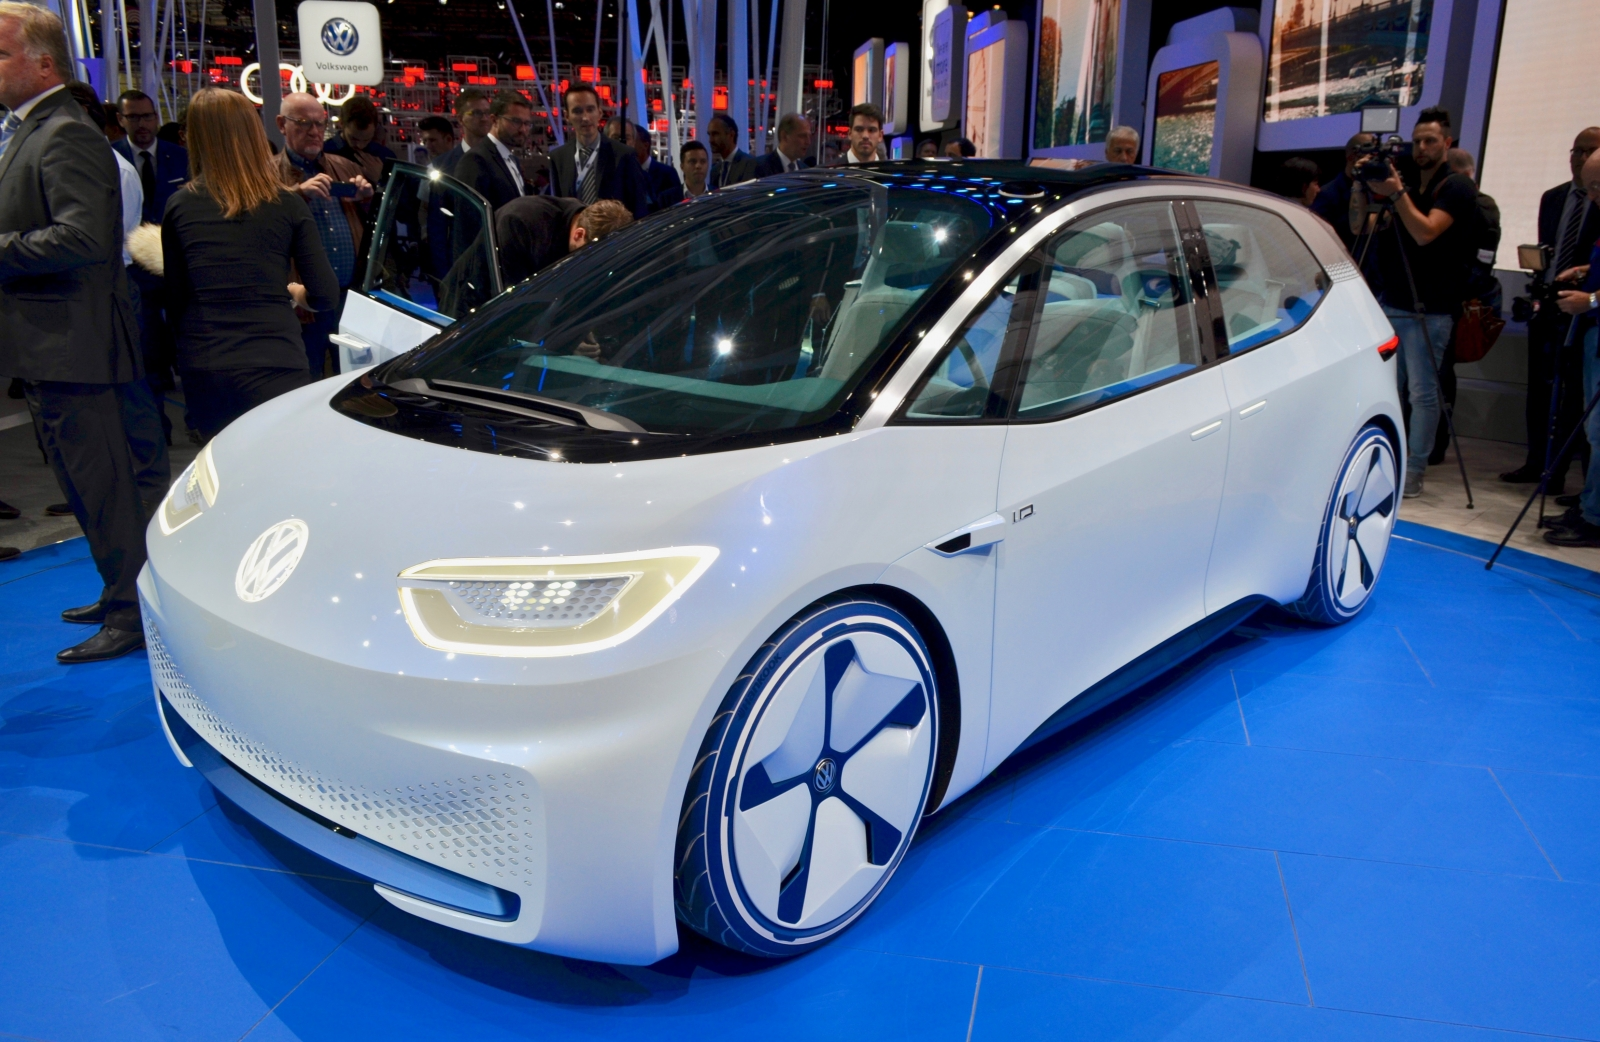 Volkswagen ID: This Is Your Self-driving Golf Of The Future